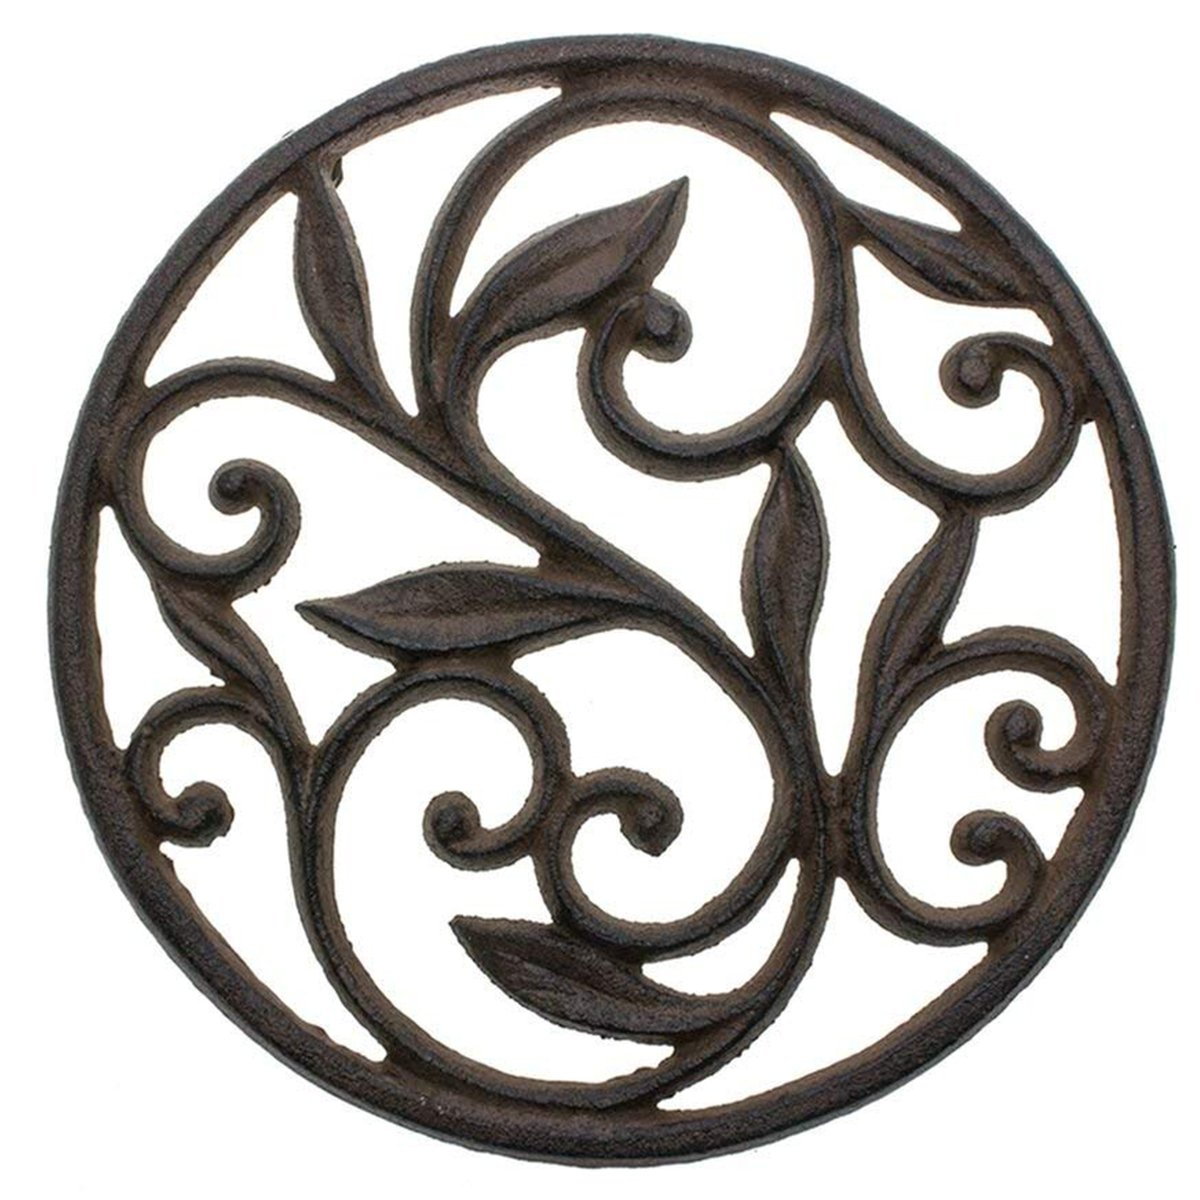 Cast Iron Trivet - Round with Vintage Pattern - Decorative Cast Iron Trivet For Kitchen Or Dining Table - 7.7'' Diameter - Rust Brown Color - With Rubber Pegs by Comfify